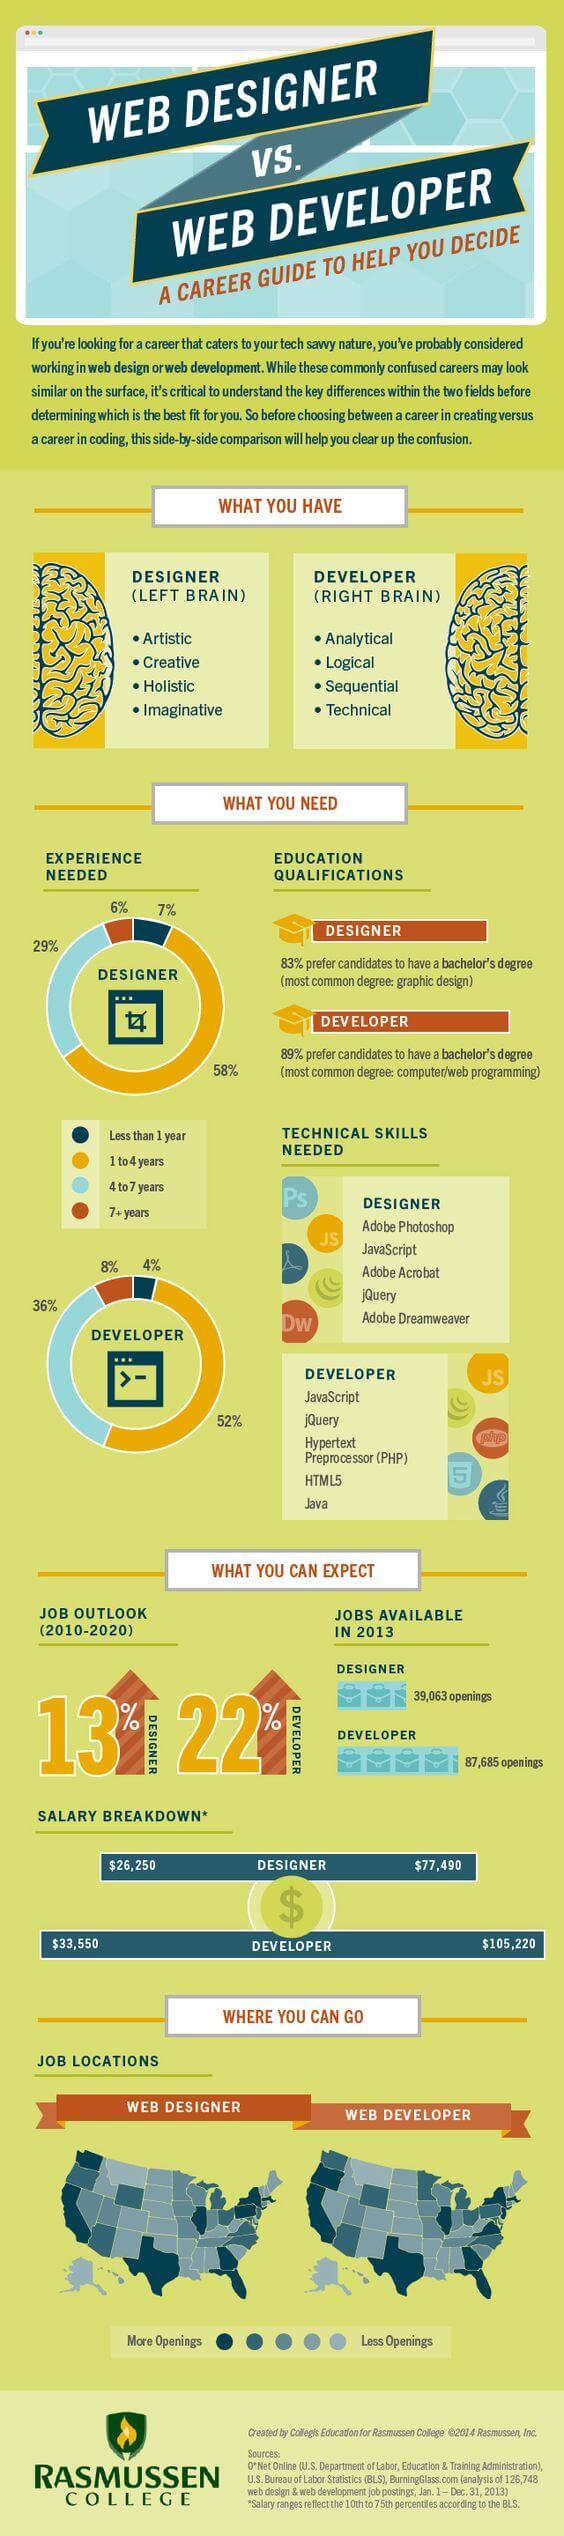 Career Guide Web Designer vs. Web Developer